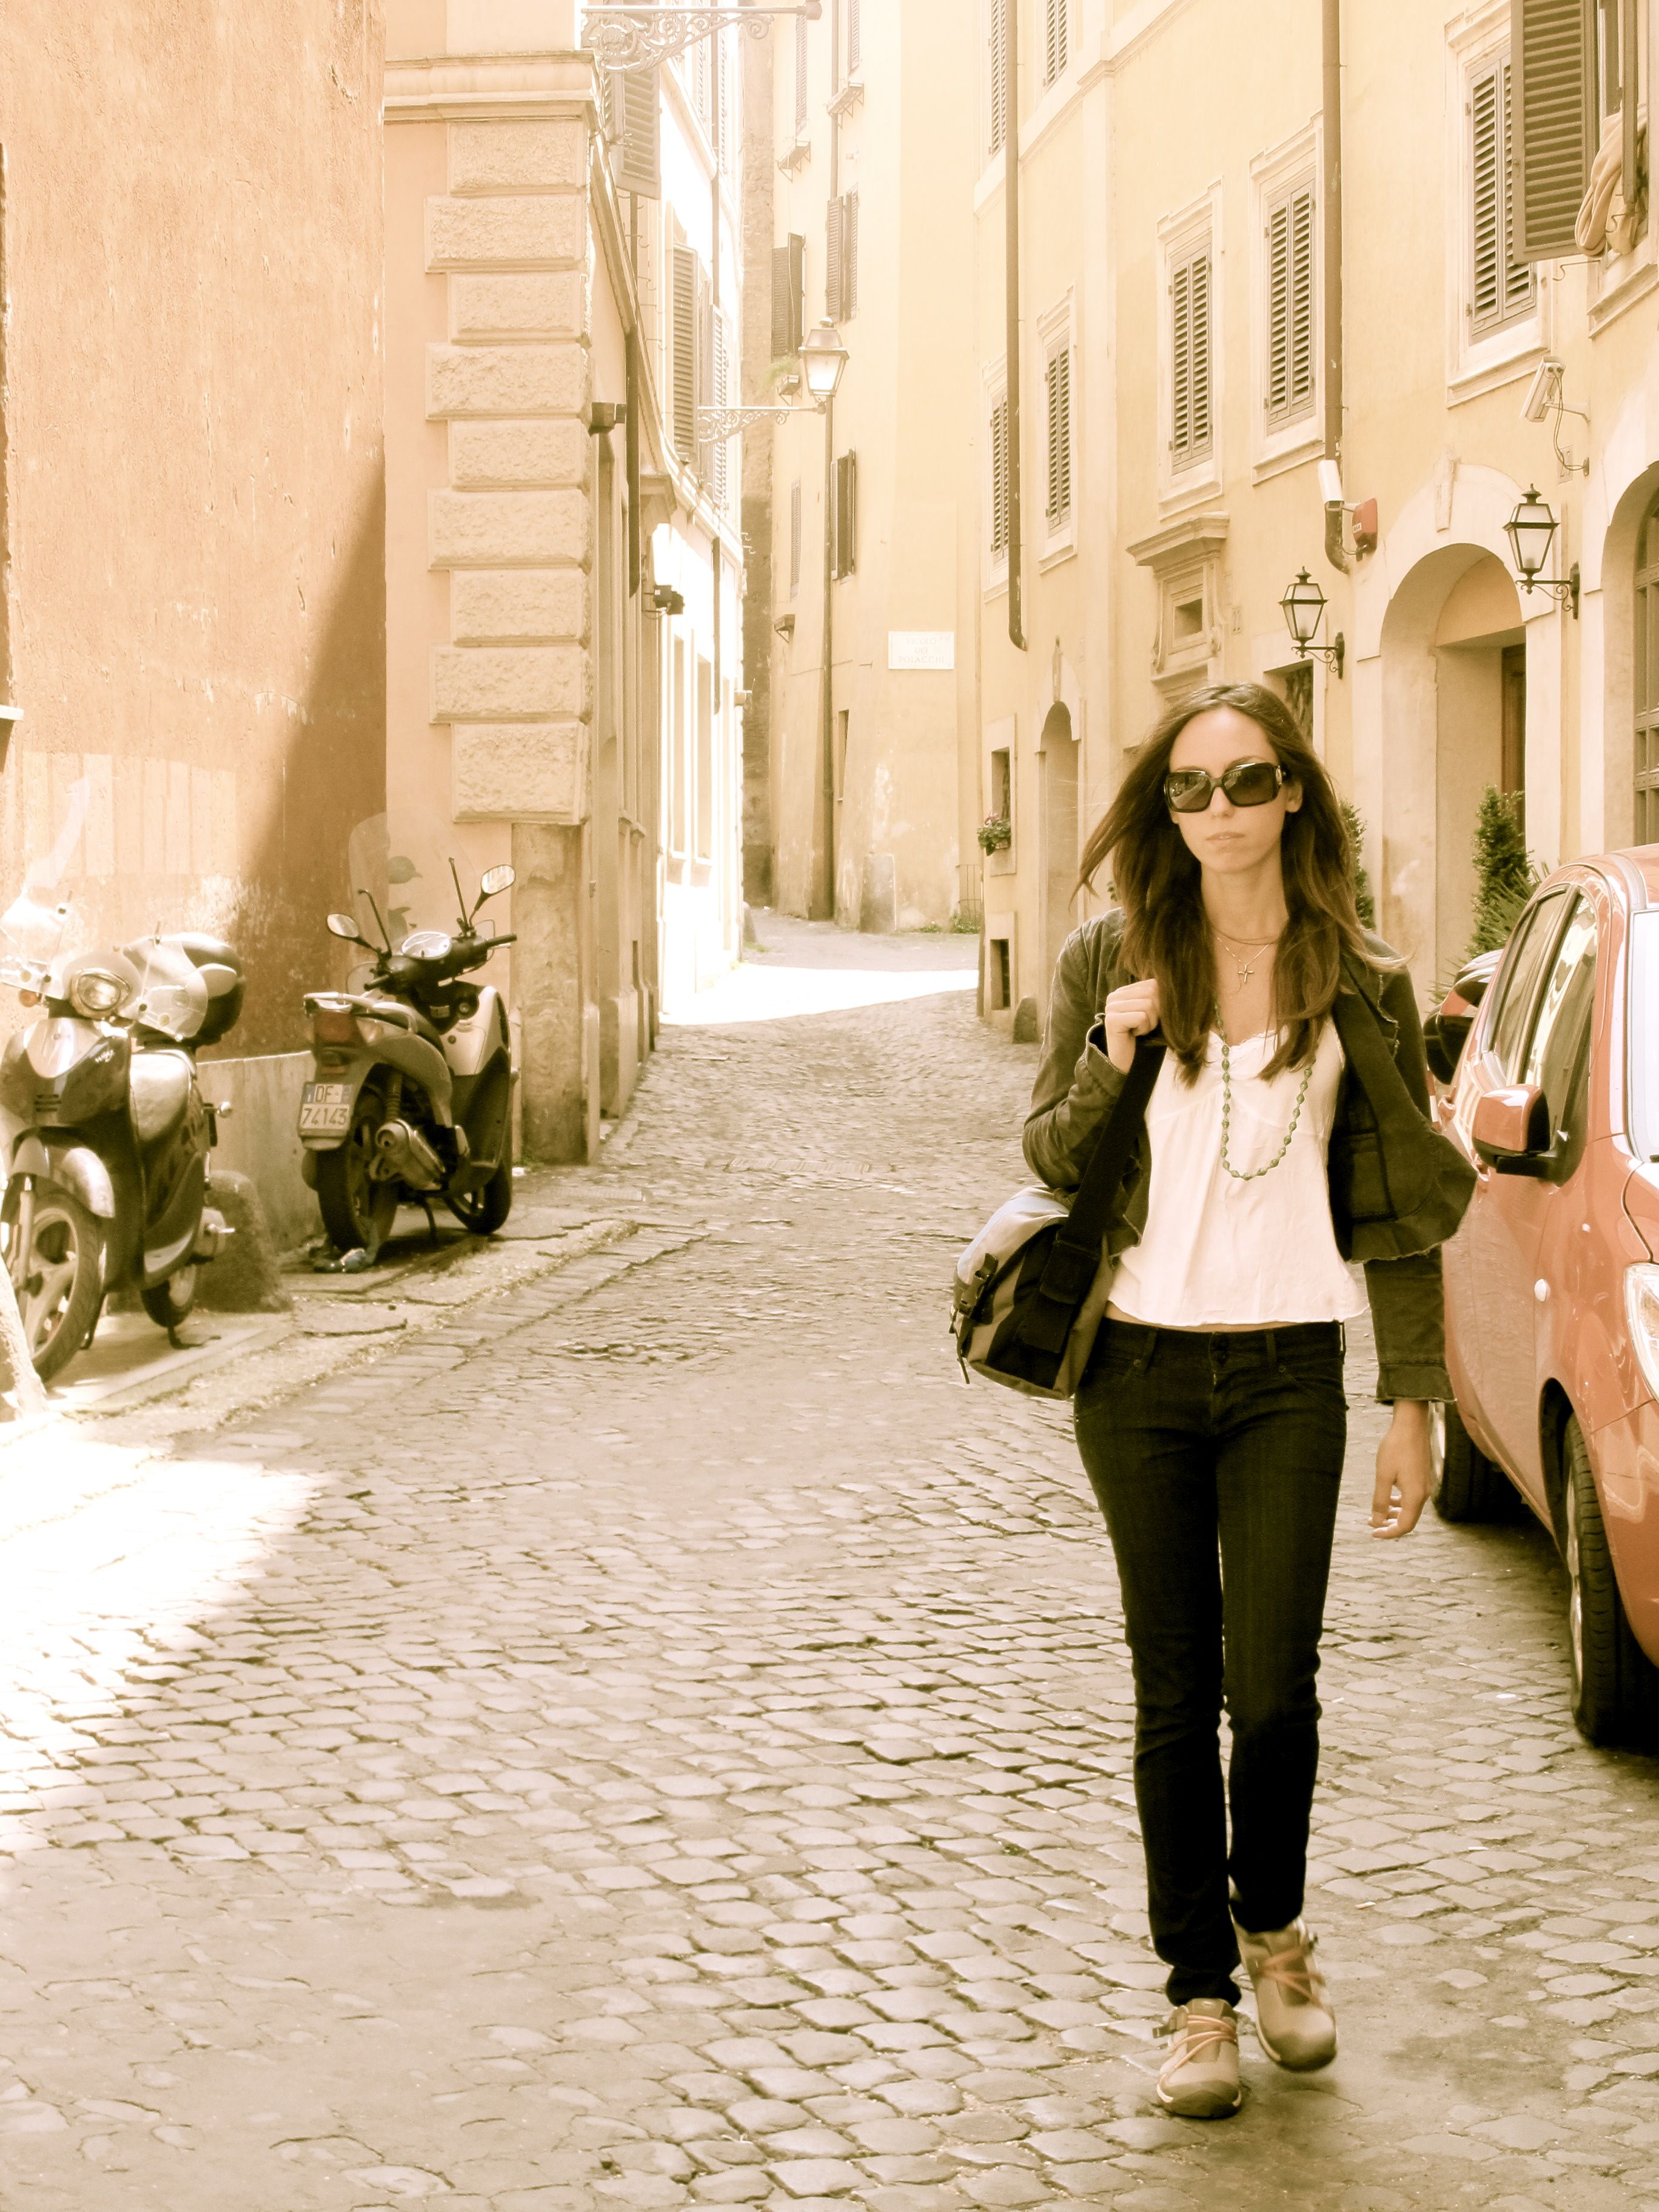 WANDERLUST~Strolling through Rome, I wanted to be really comfortable,so I wouldn't have to think twice about stopping sight seeing. Hudson skinny jeans, light weight club monaco blazer & chaco shoes were the way to go, for a long morning-day out on the town.